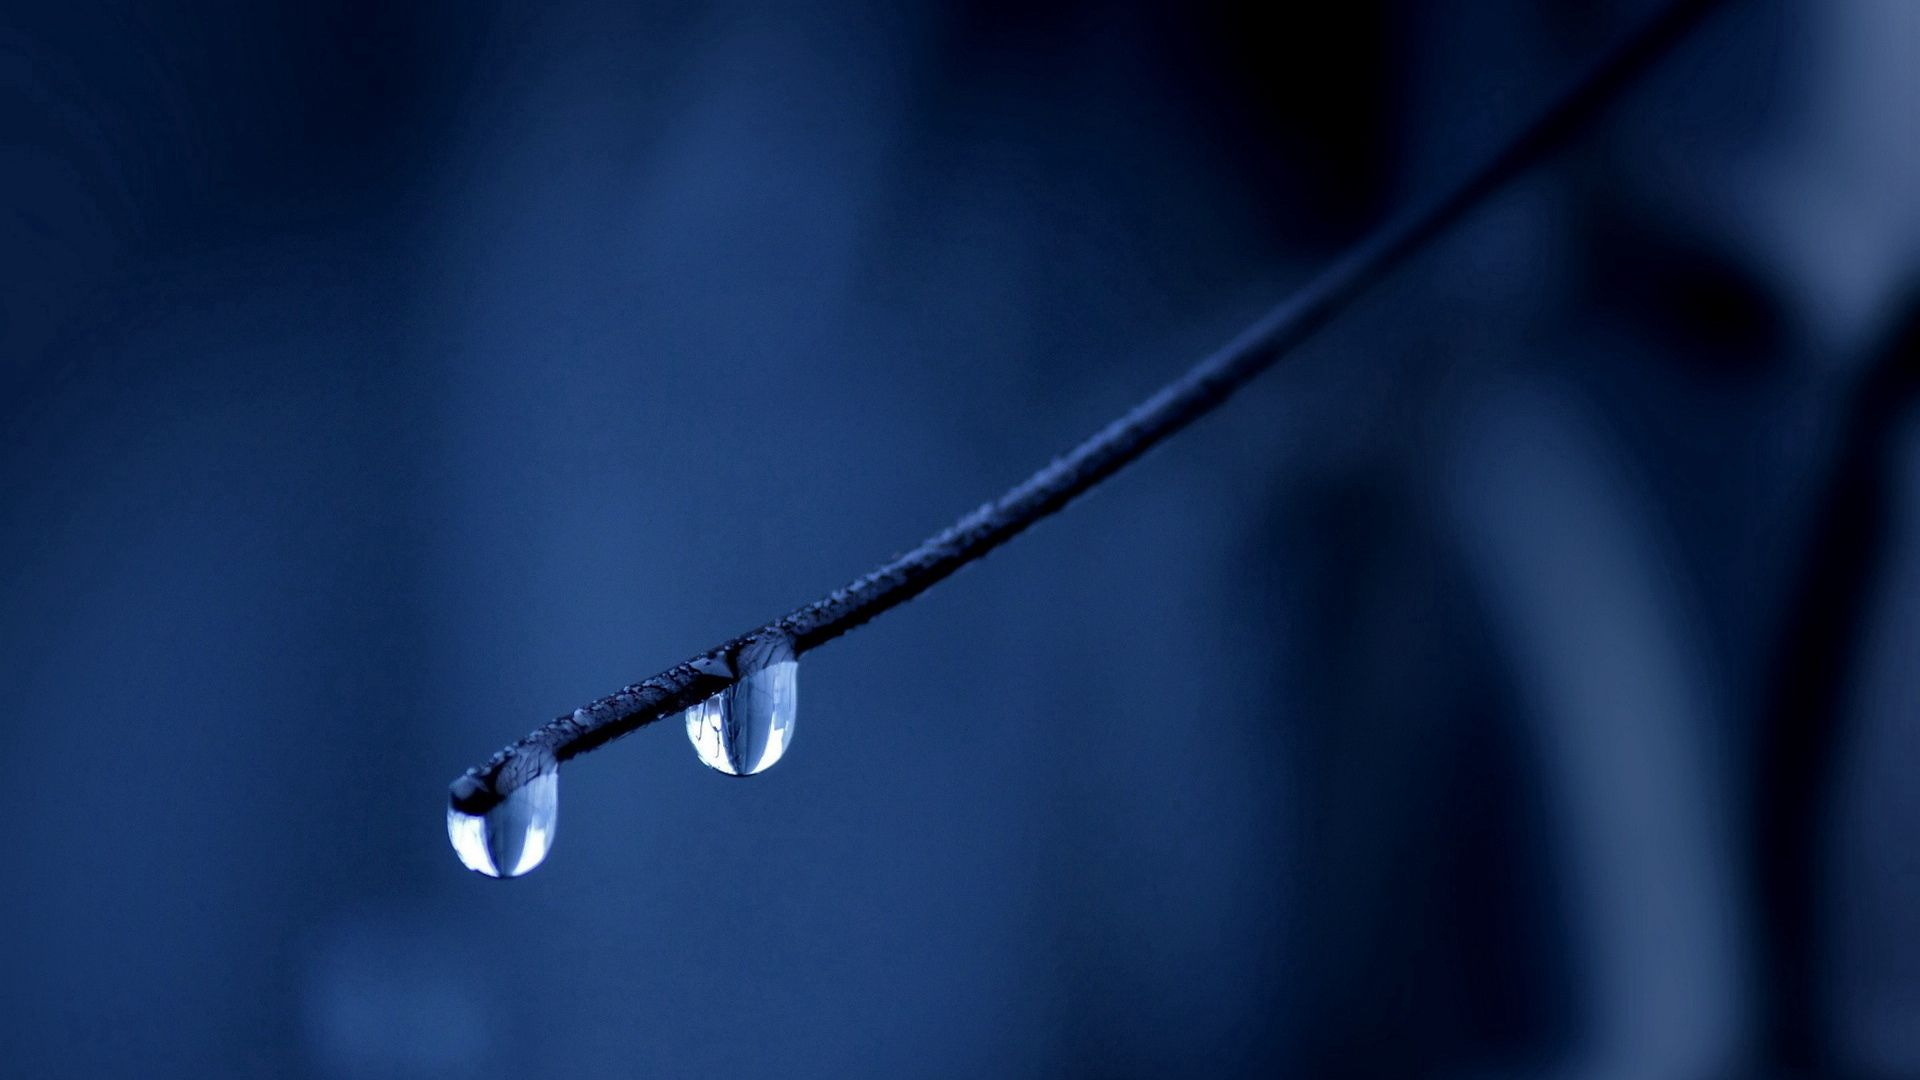 151914 download wallpaper Macro, Branch, Drops, Background, Stains, Spots screensavers and pictures for free